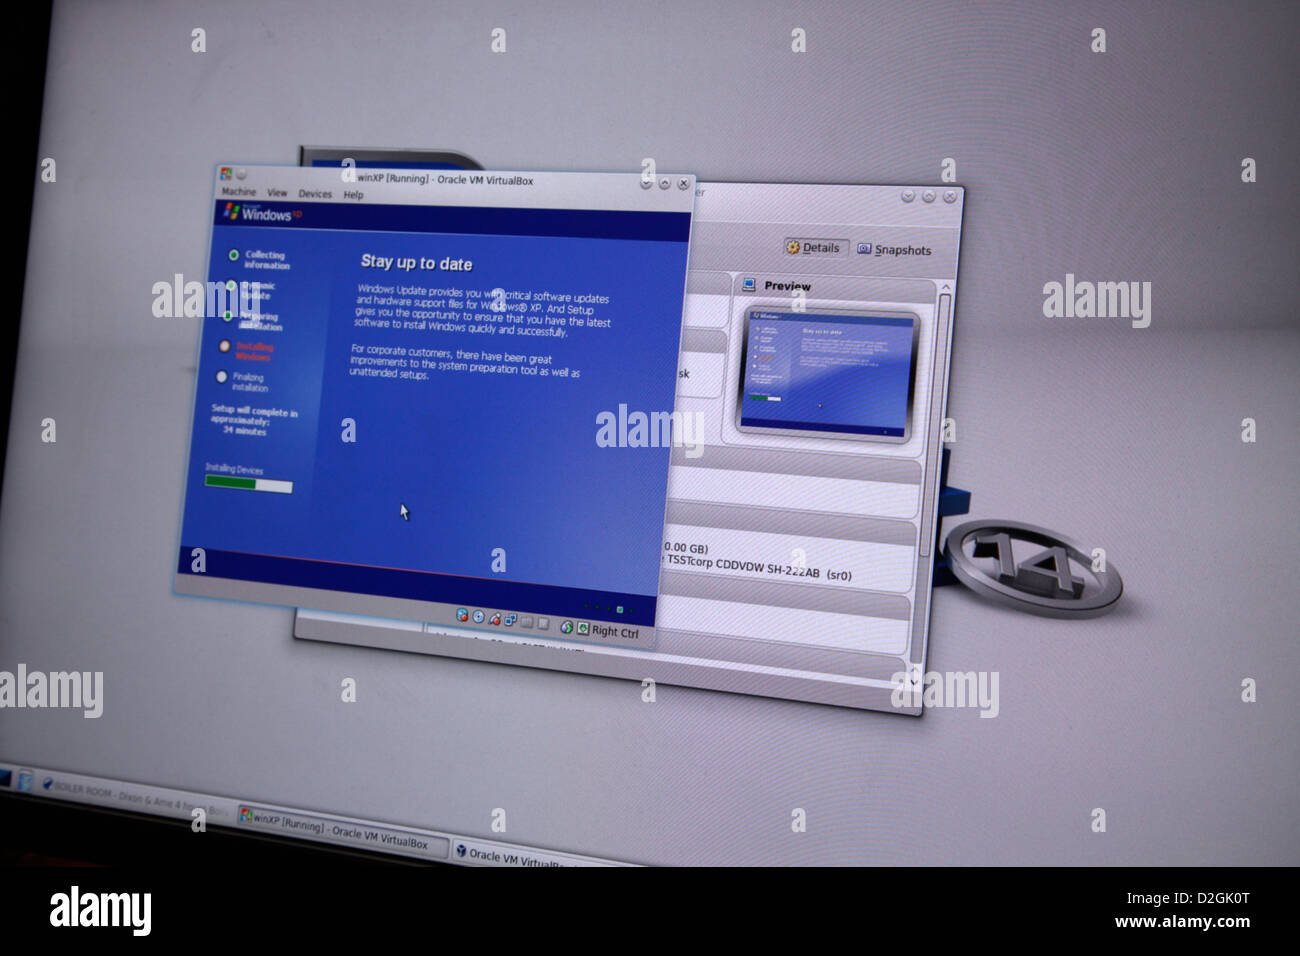 Installing Windows XP operating system inside Oracle Virtual Box on a Linux Mint 14 computer - Stock Image